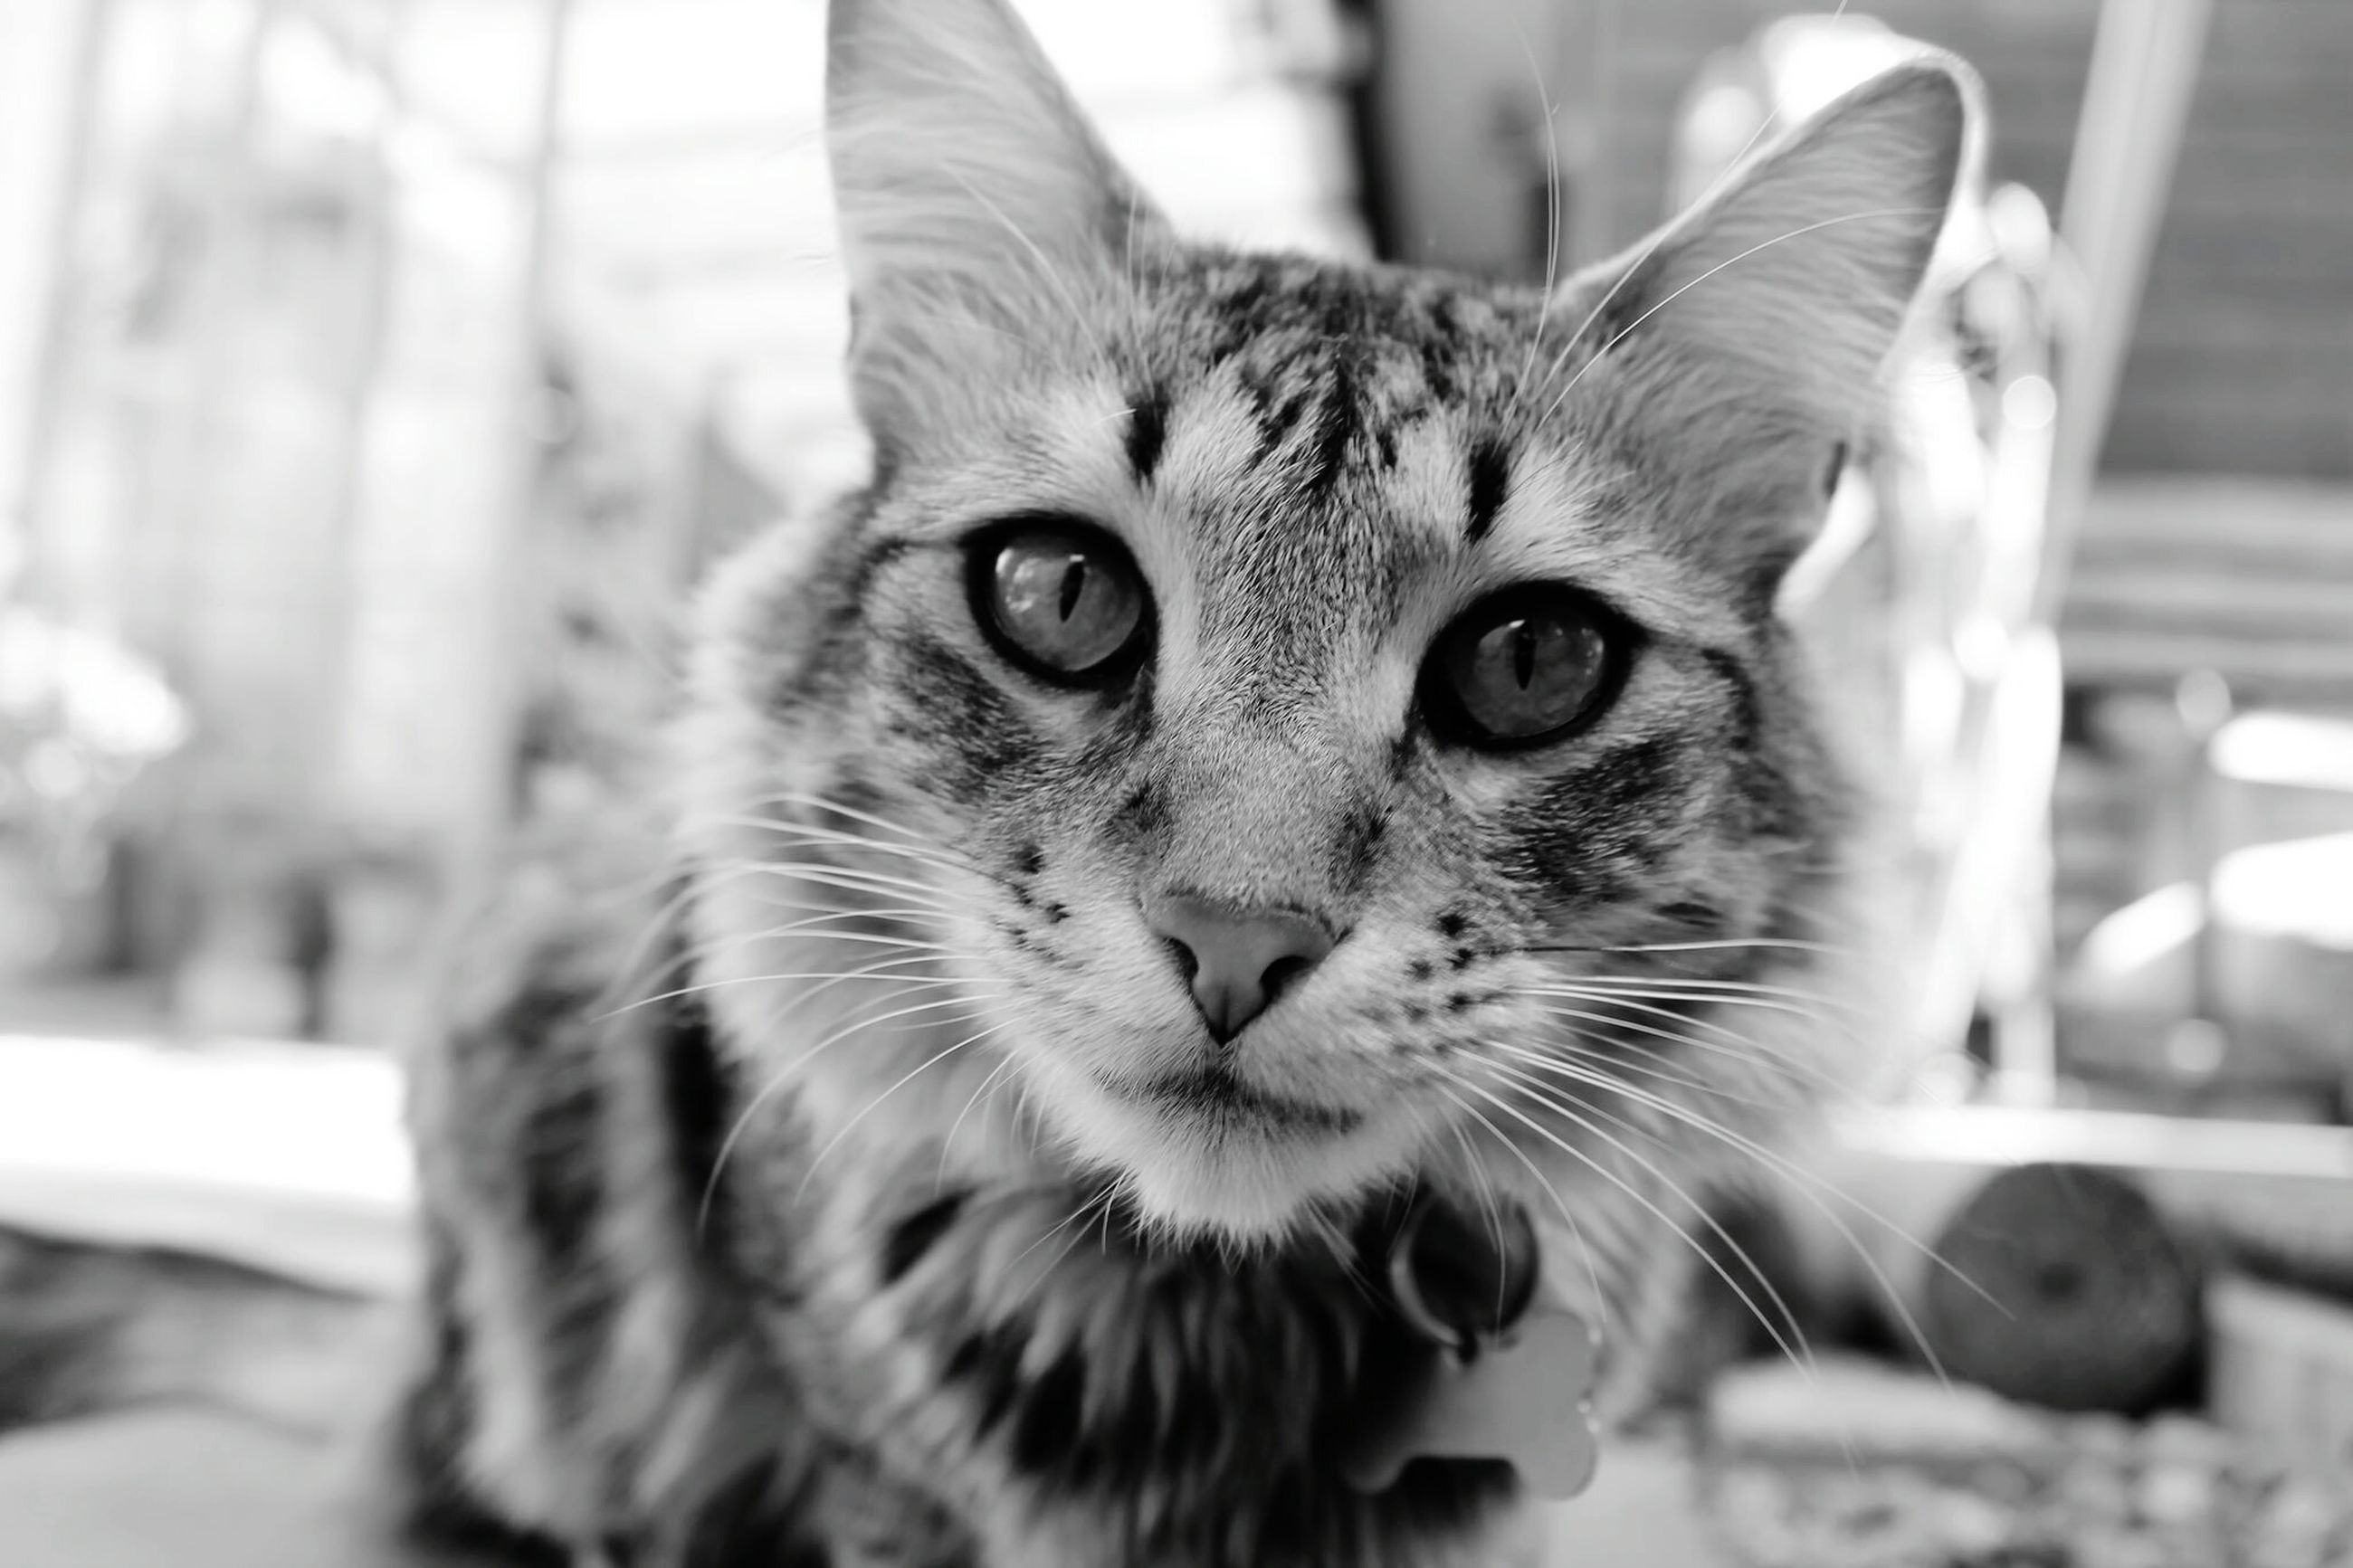 domestic cat, pets, one animal, cat, domestic animals, animal themes, whisker, feline, mammal, focus on foreground, portrait, looking at camera, close-up, indoors, animal head, front view, day, selective focus, sitting